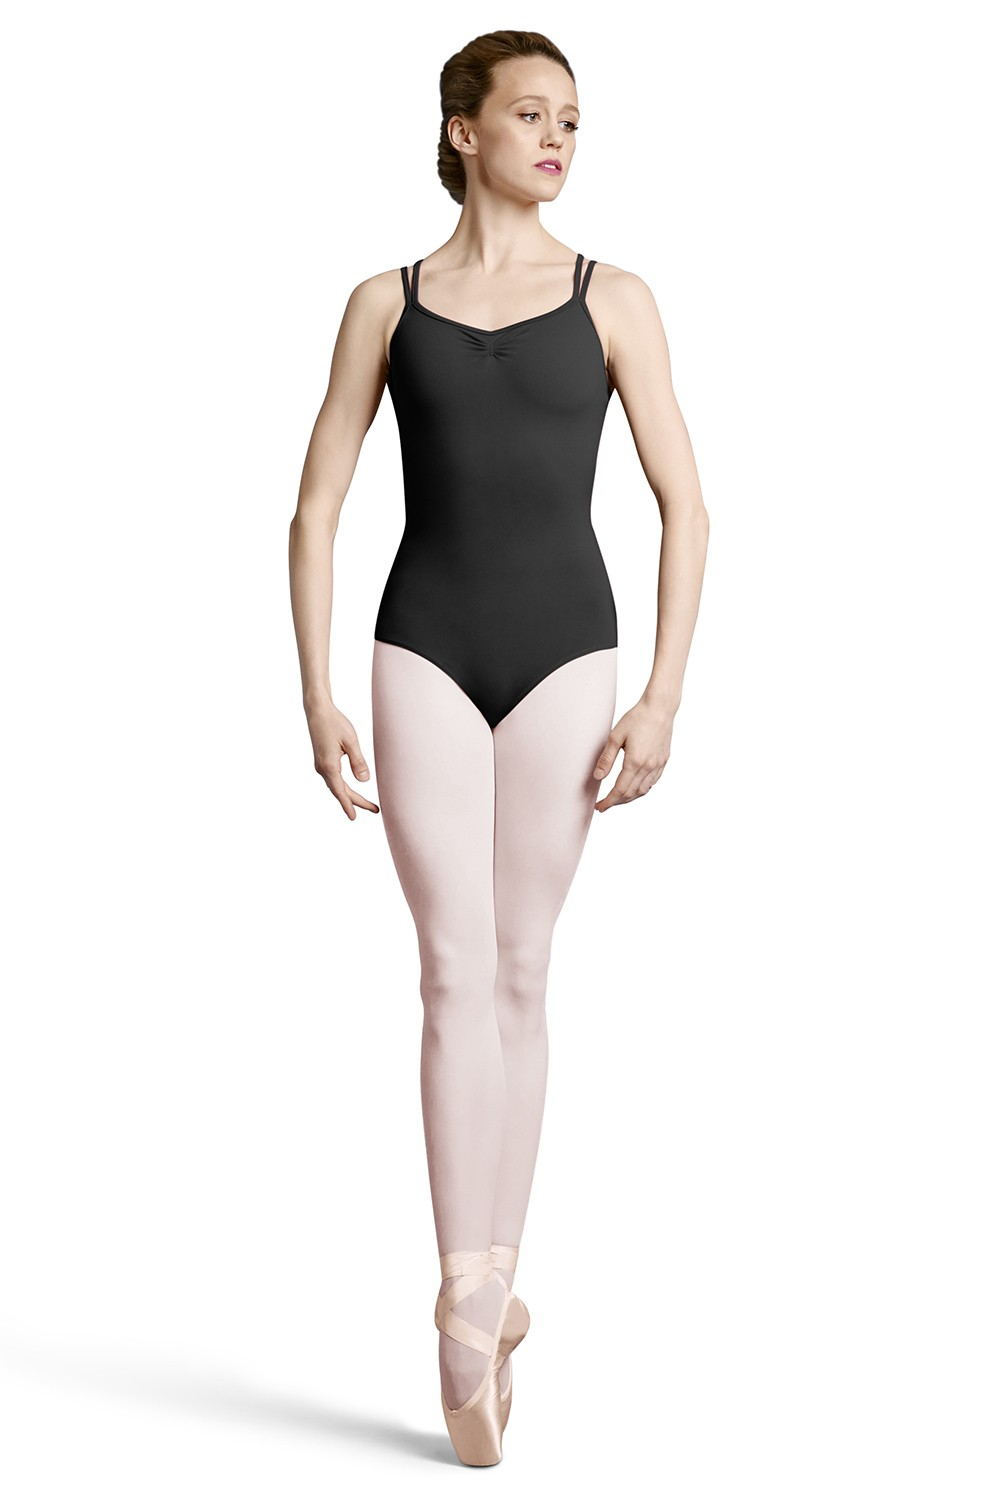 Clidna Women's Dance Leotards